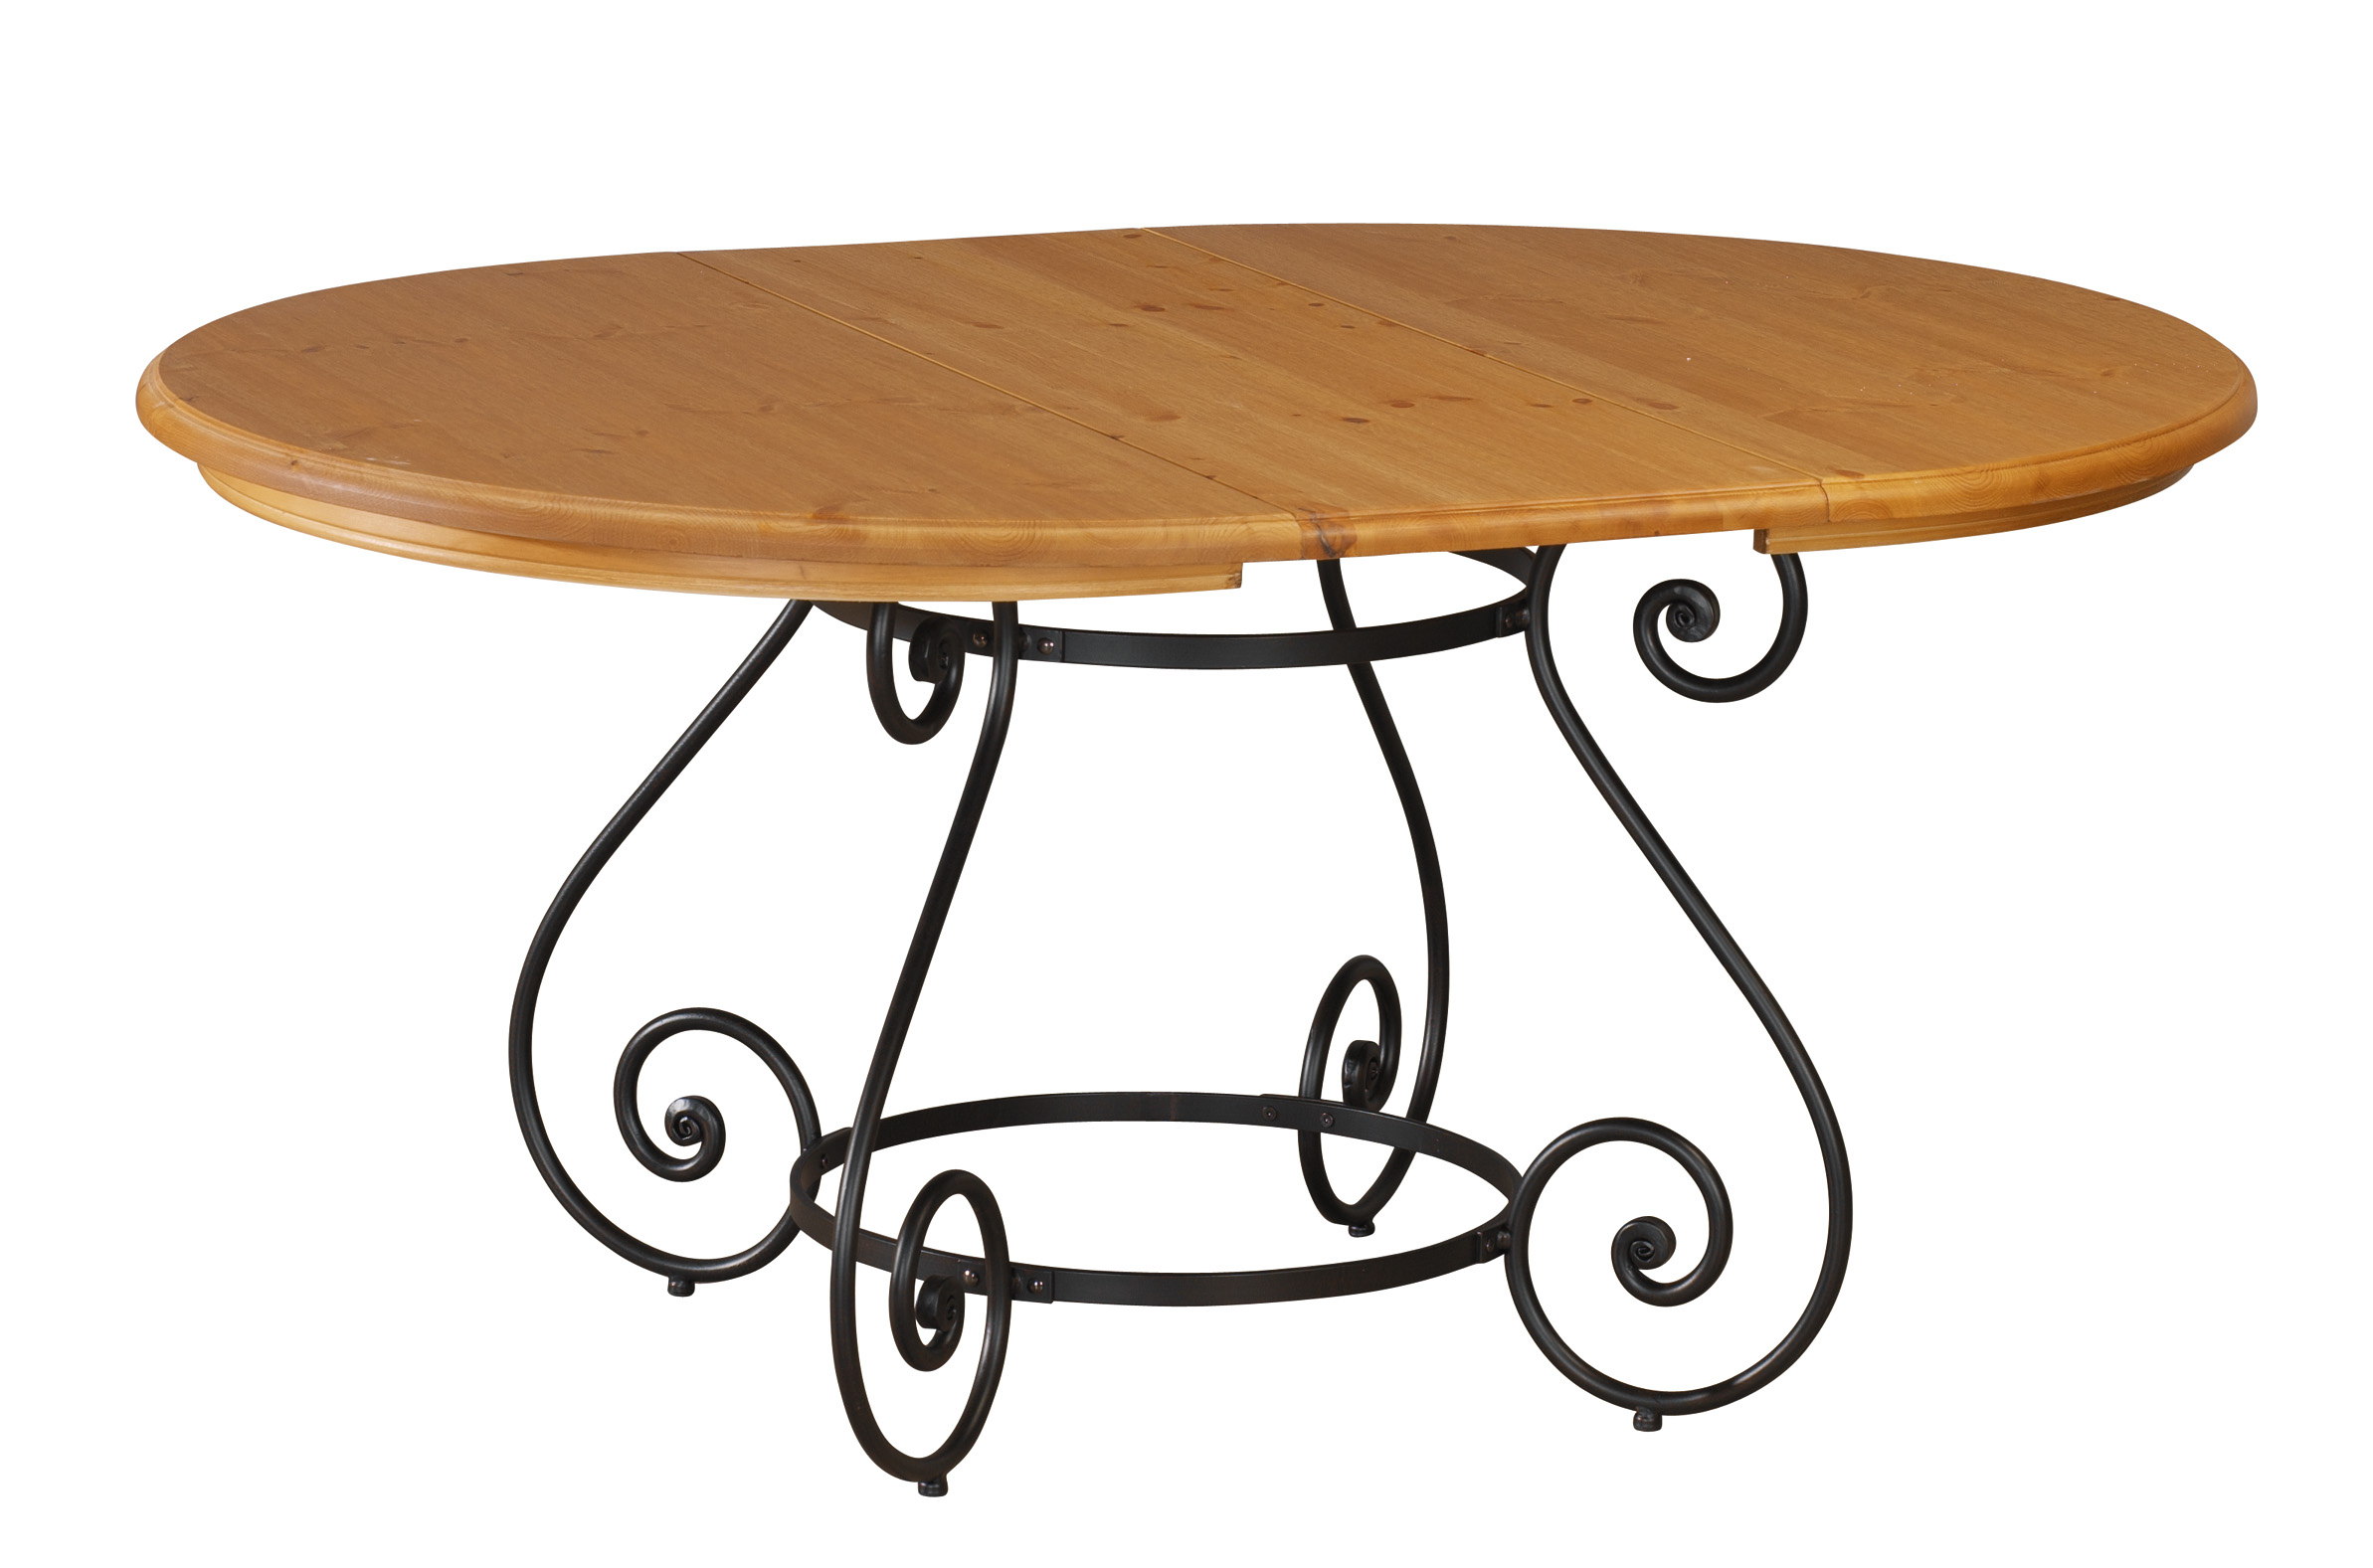 Table ronde fer forg et bois table de lit for Table bois pied fer forge